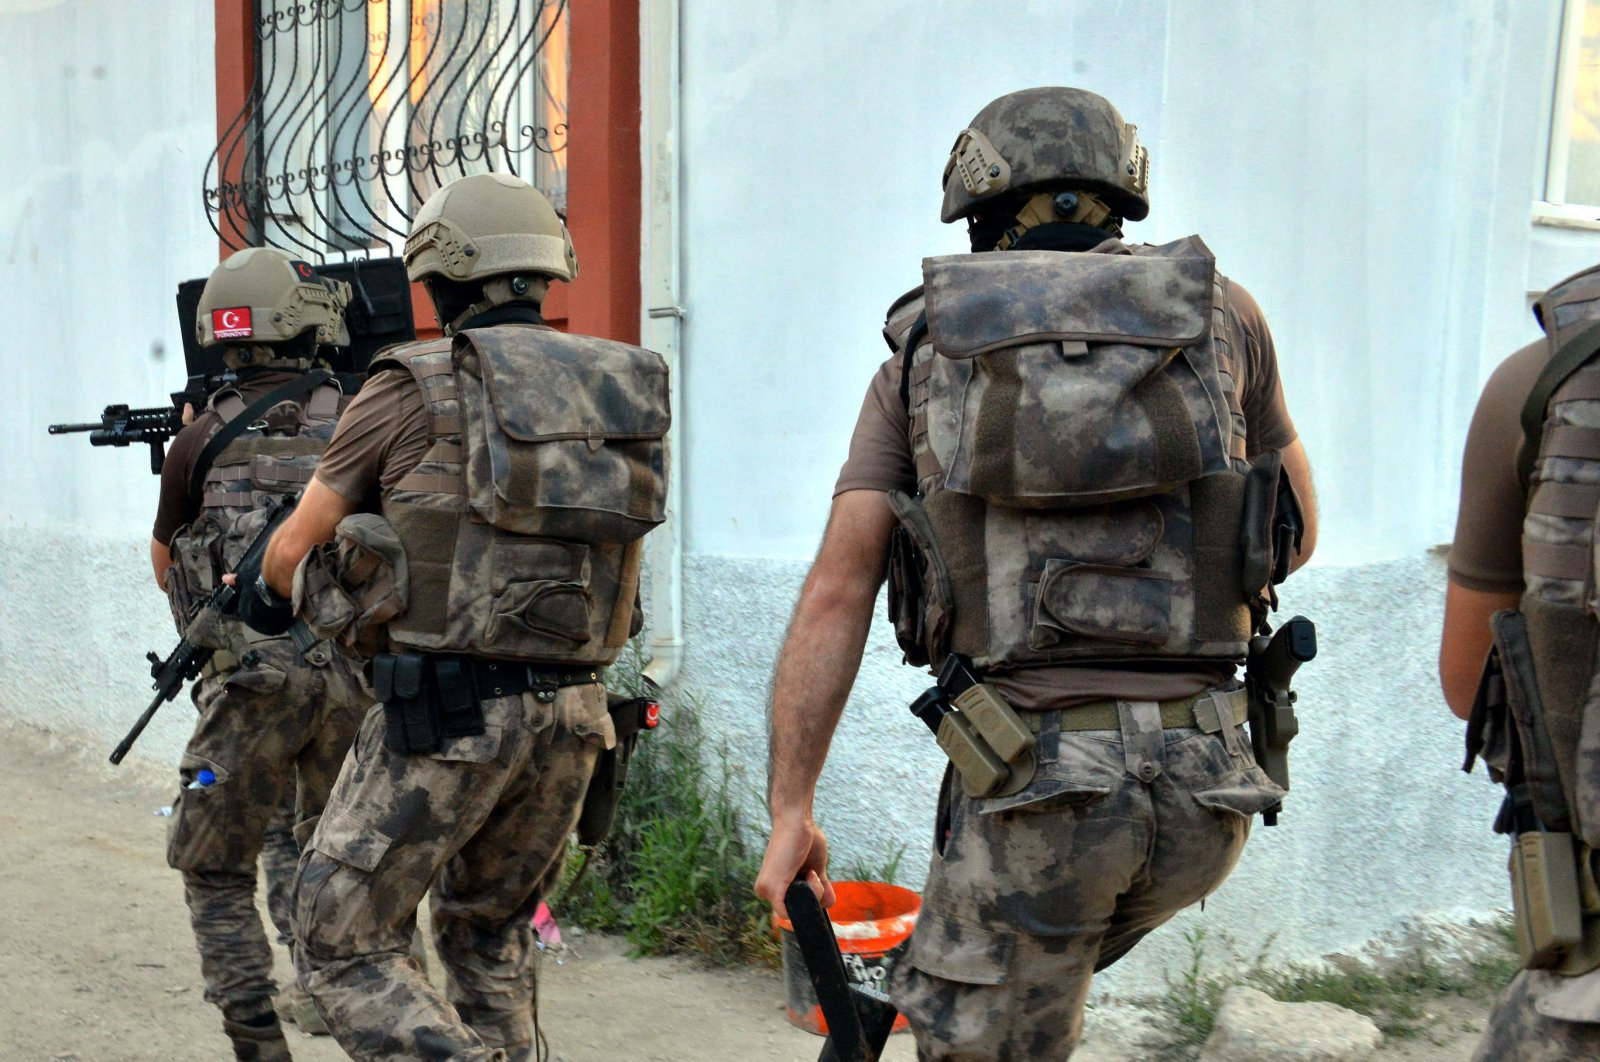 Security forces carry out a counterterrorism operation in southern Adana province, June 9, 2020. (DHA Photo)